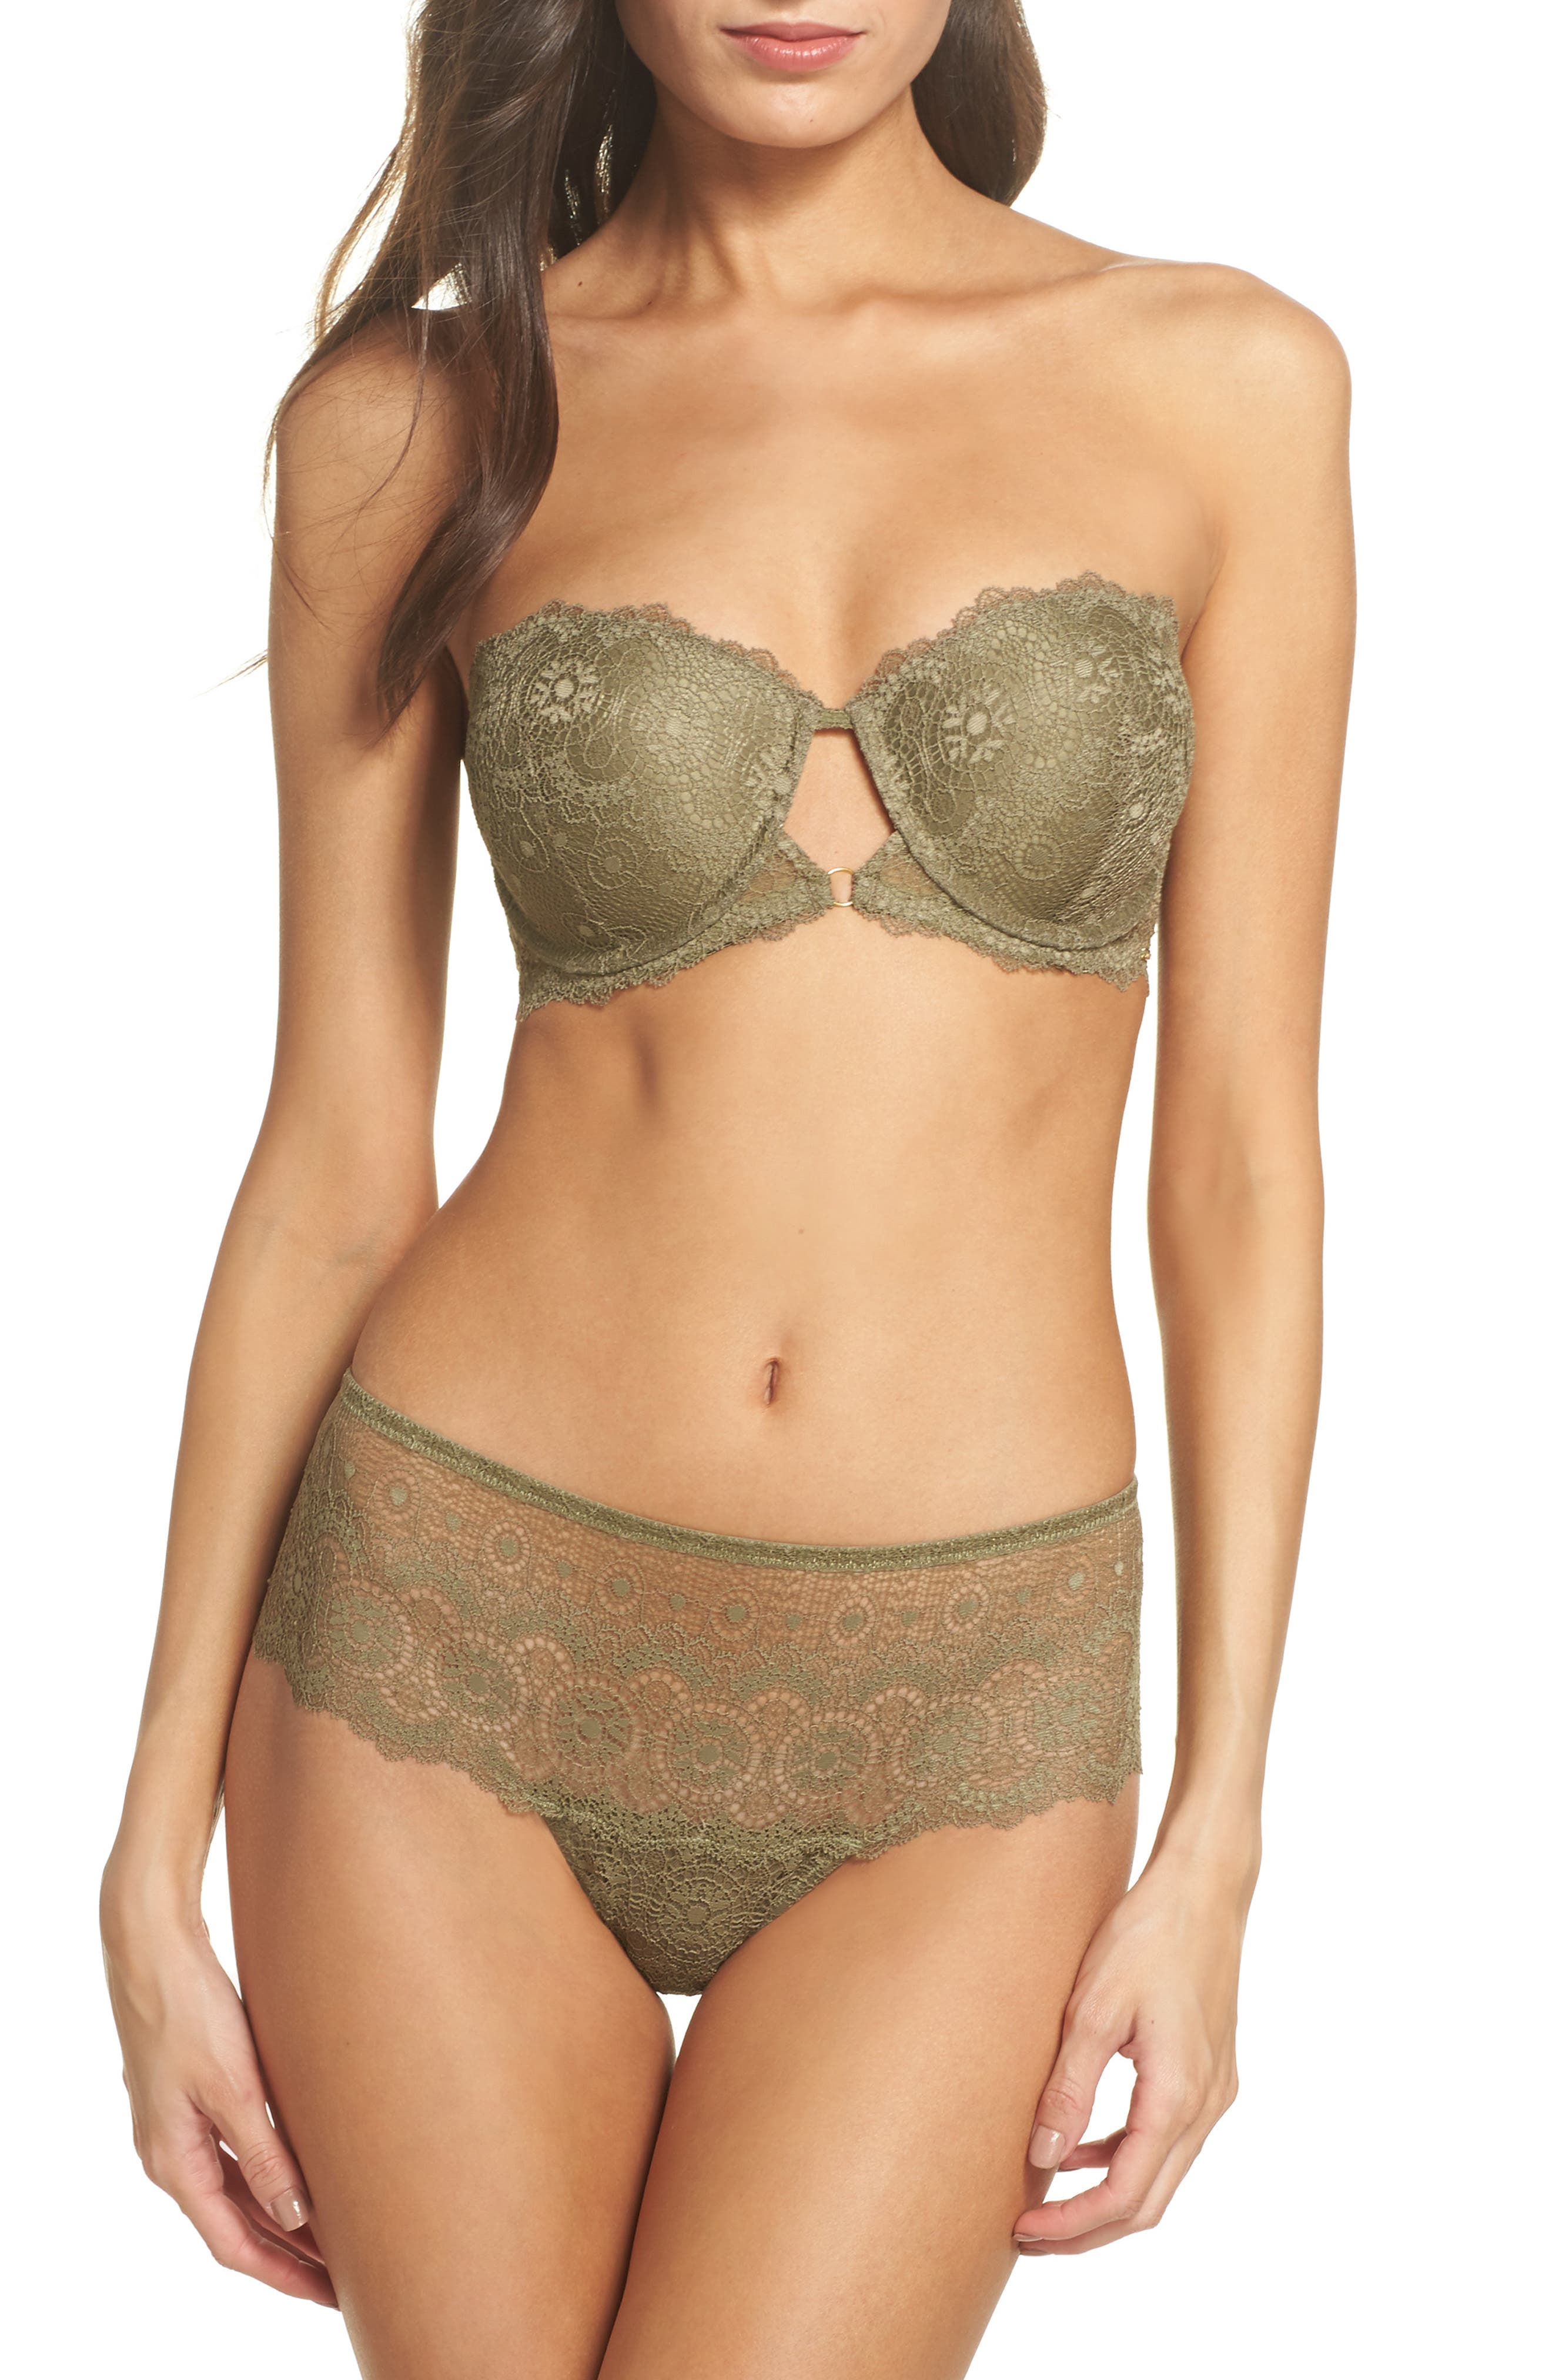 Strapless Underwire Lace Bra,                             Alternate thumbnail 9, color,                             331